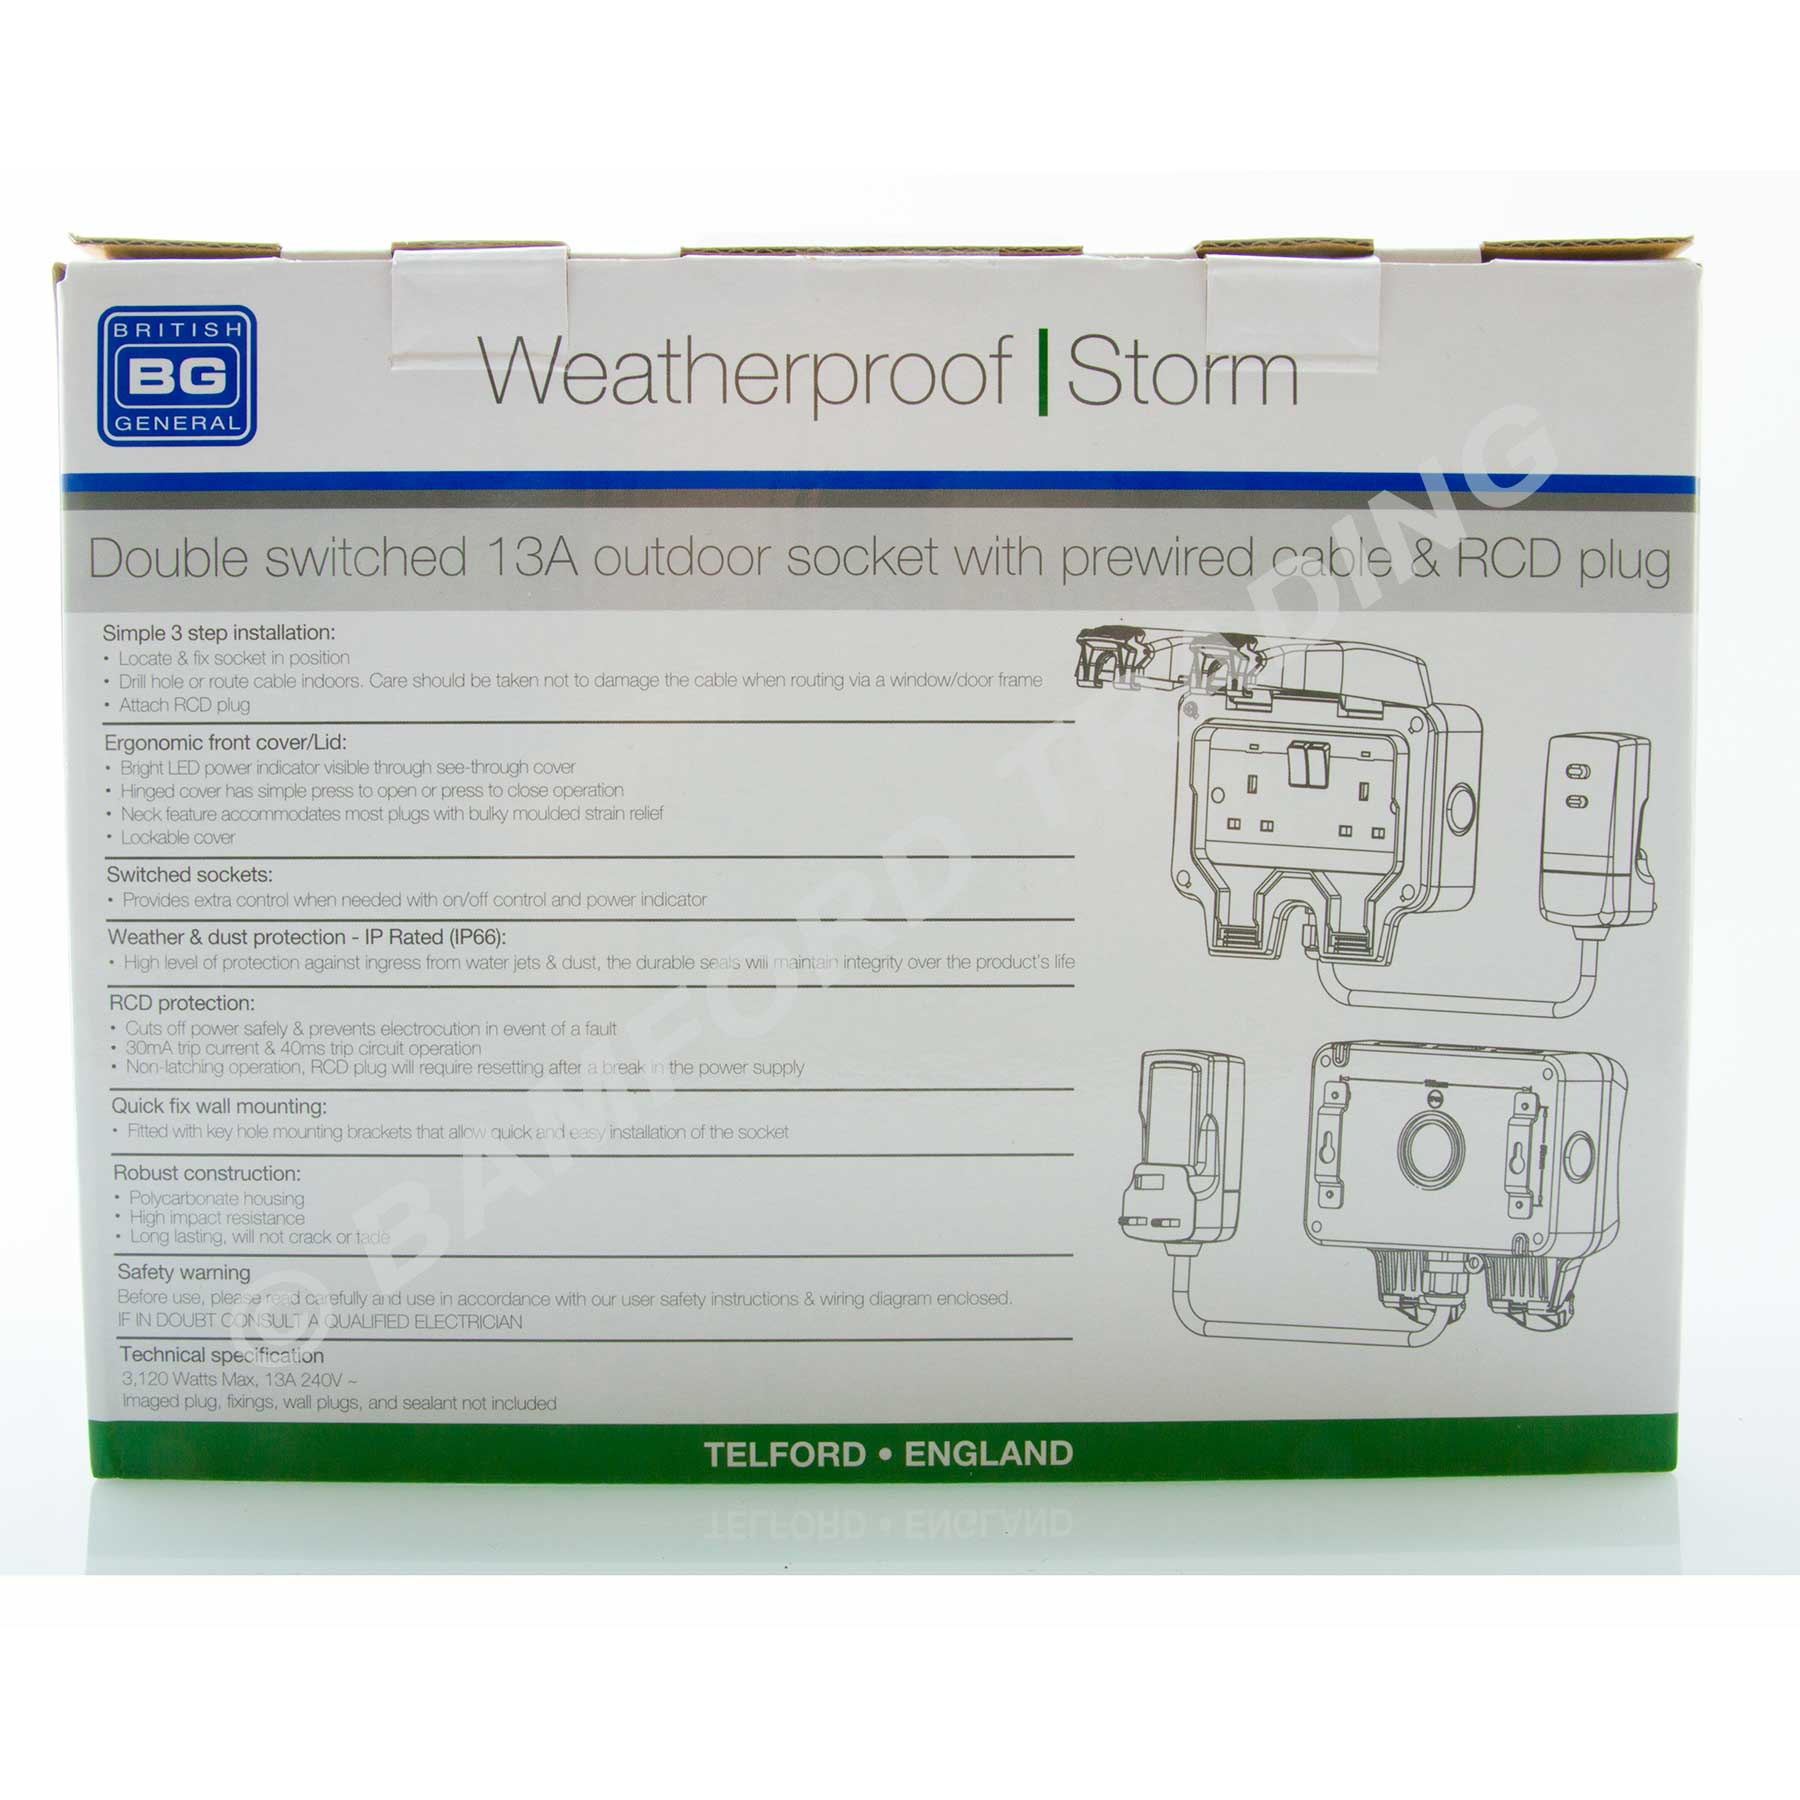 Masterplug Weatherproof Outdoor Mains Power Kit Nexus WP22KIT/3 on